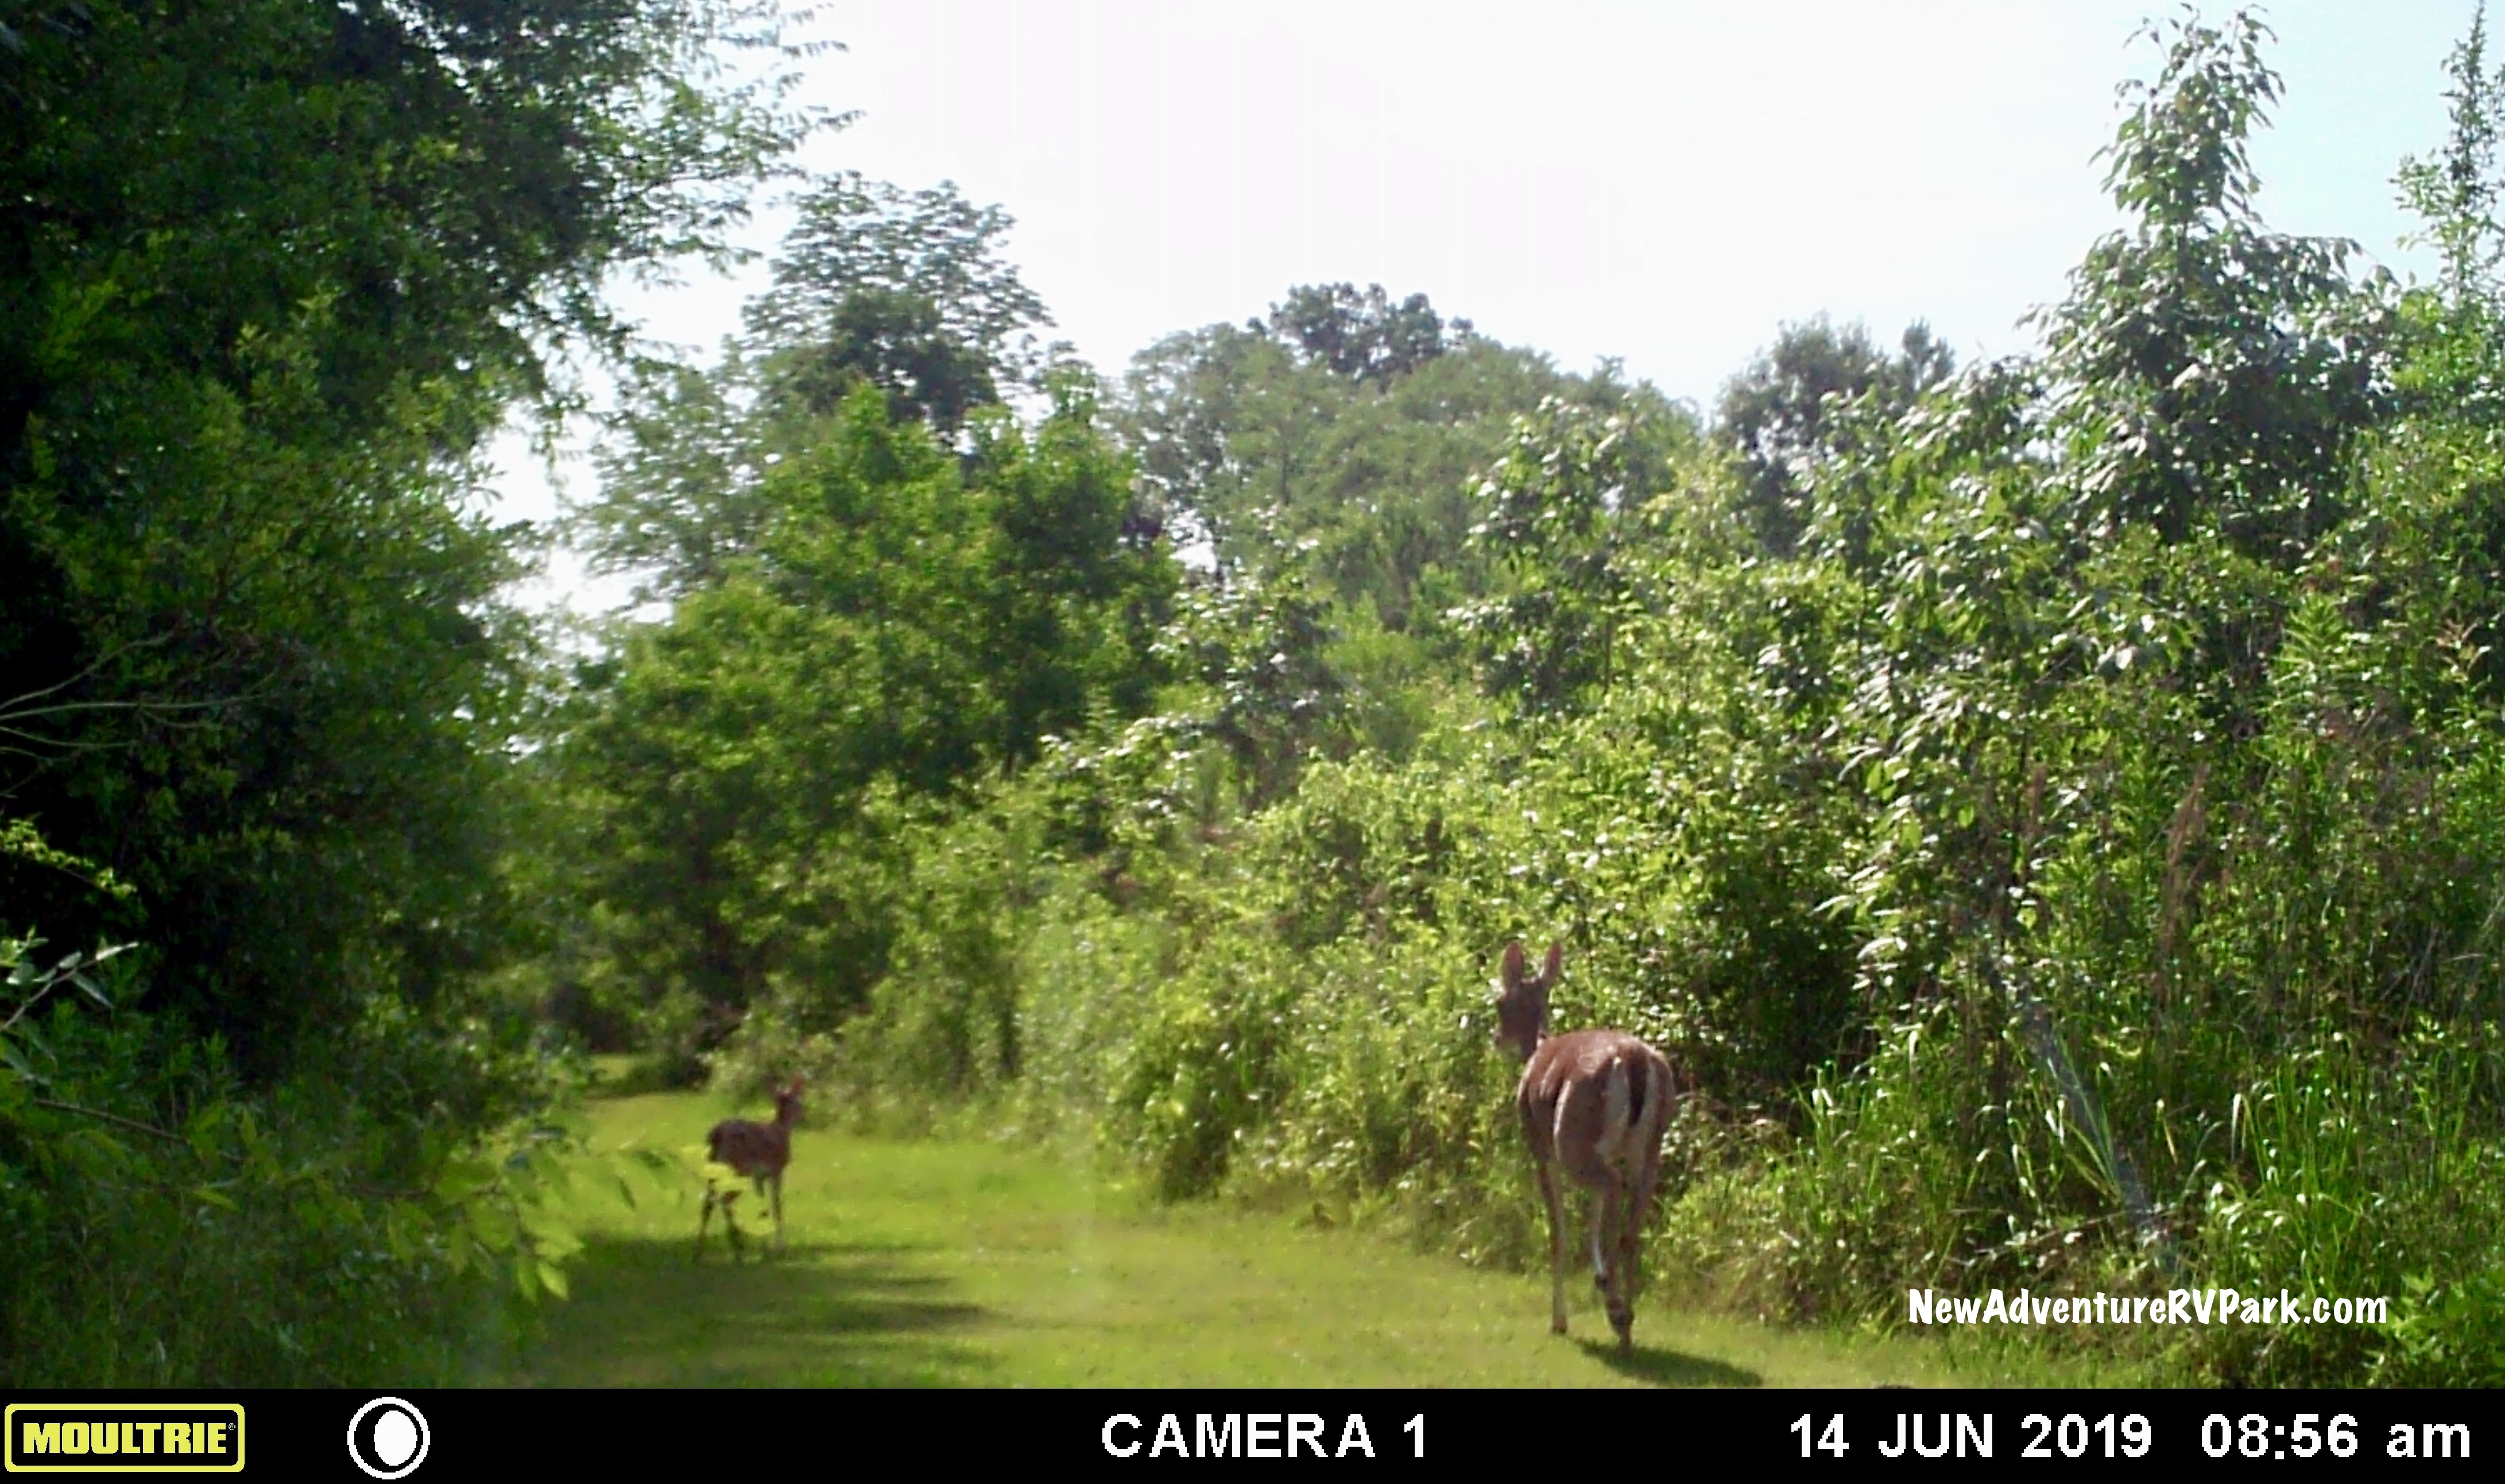 Deer strolling on the rough walking trail at New Adventure.